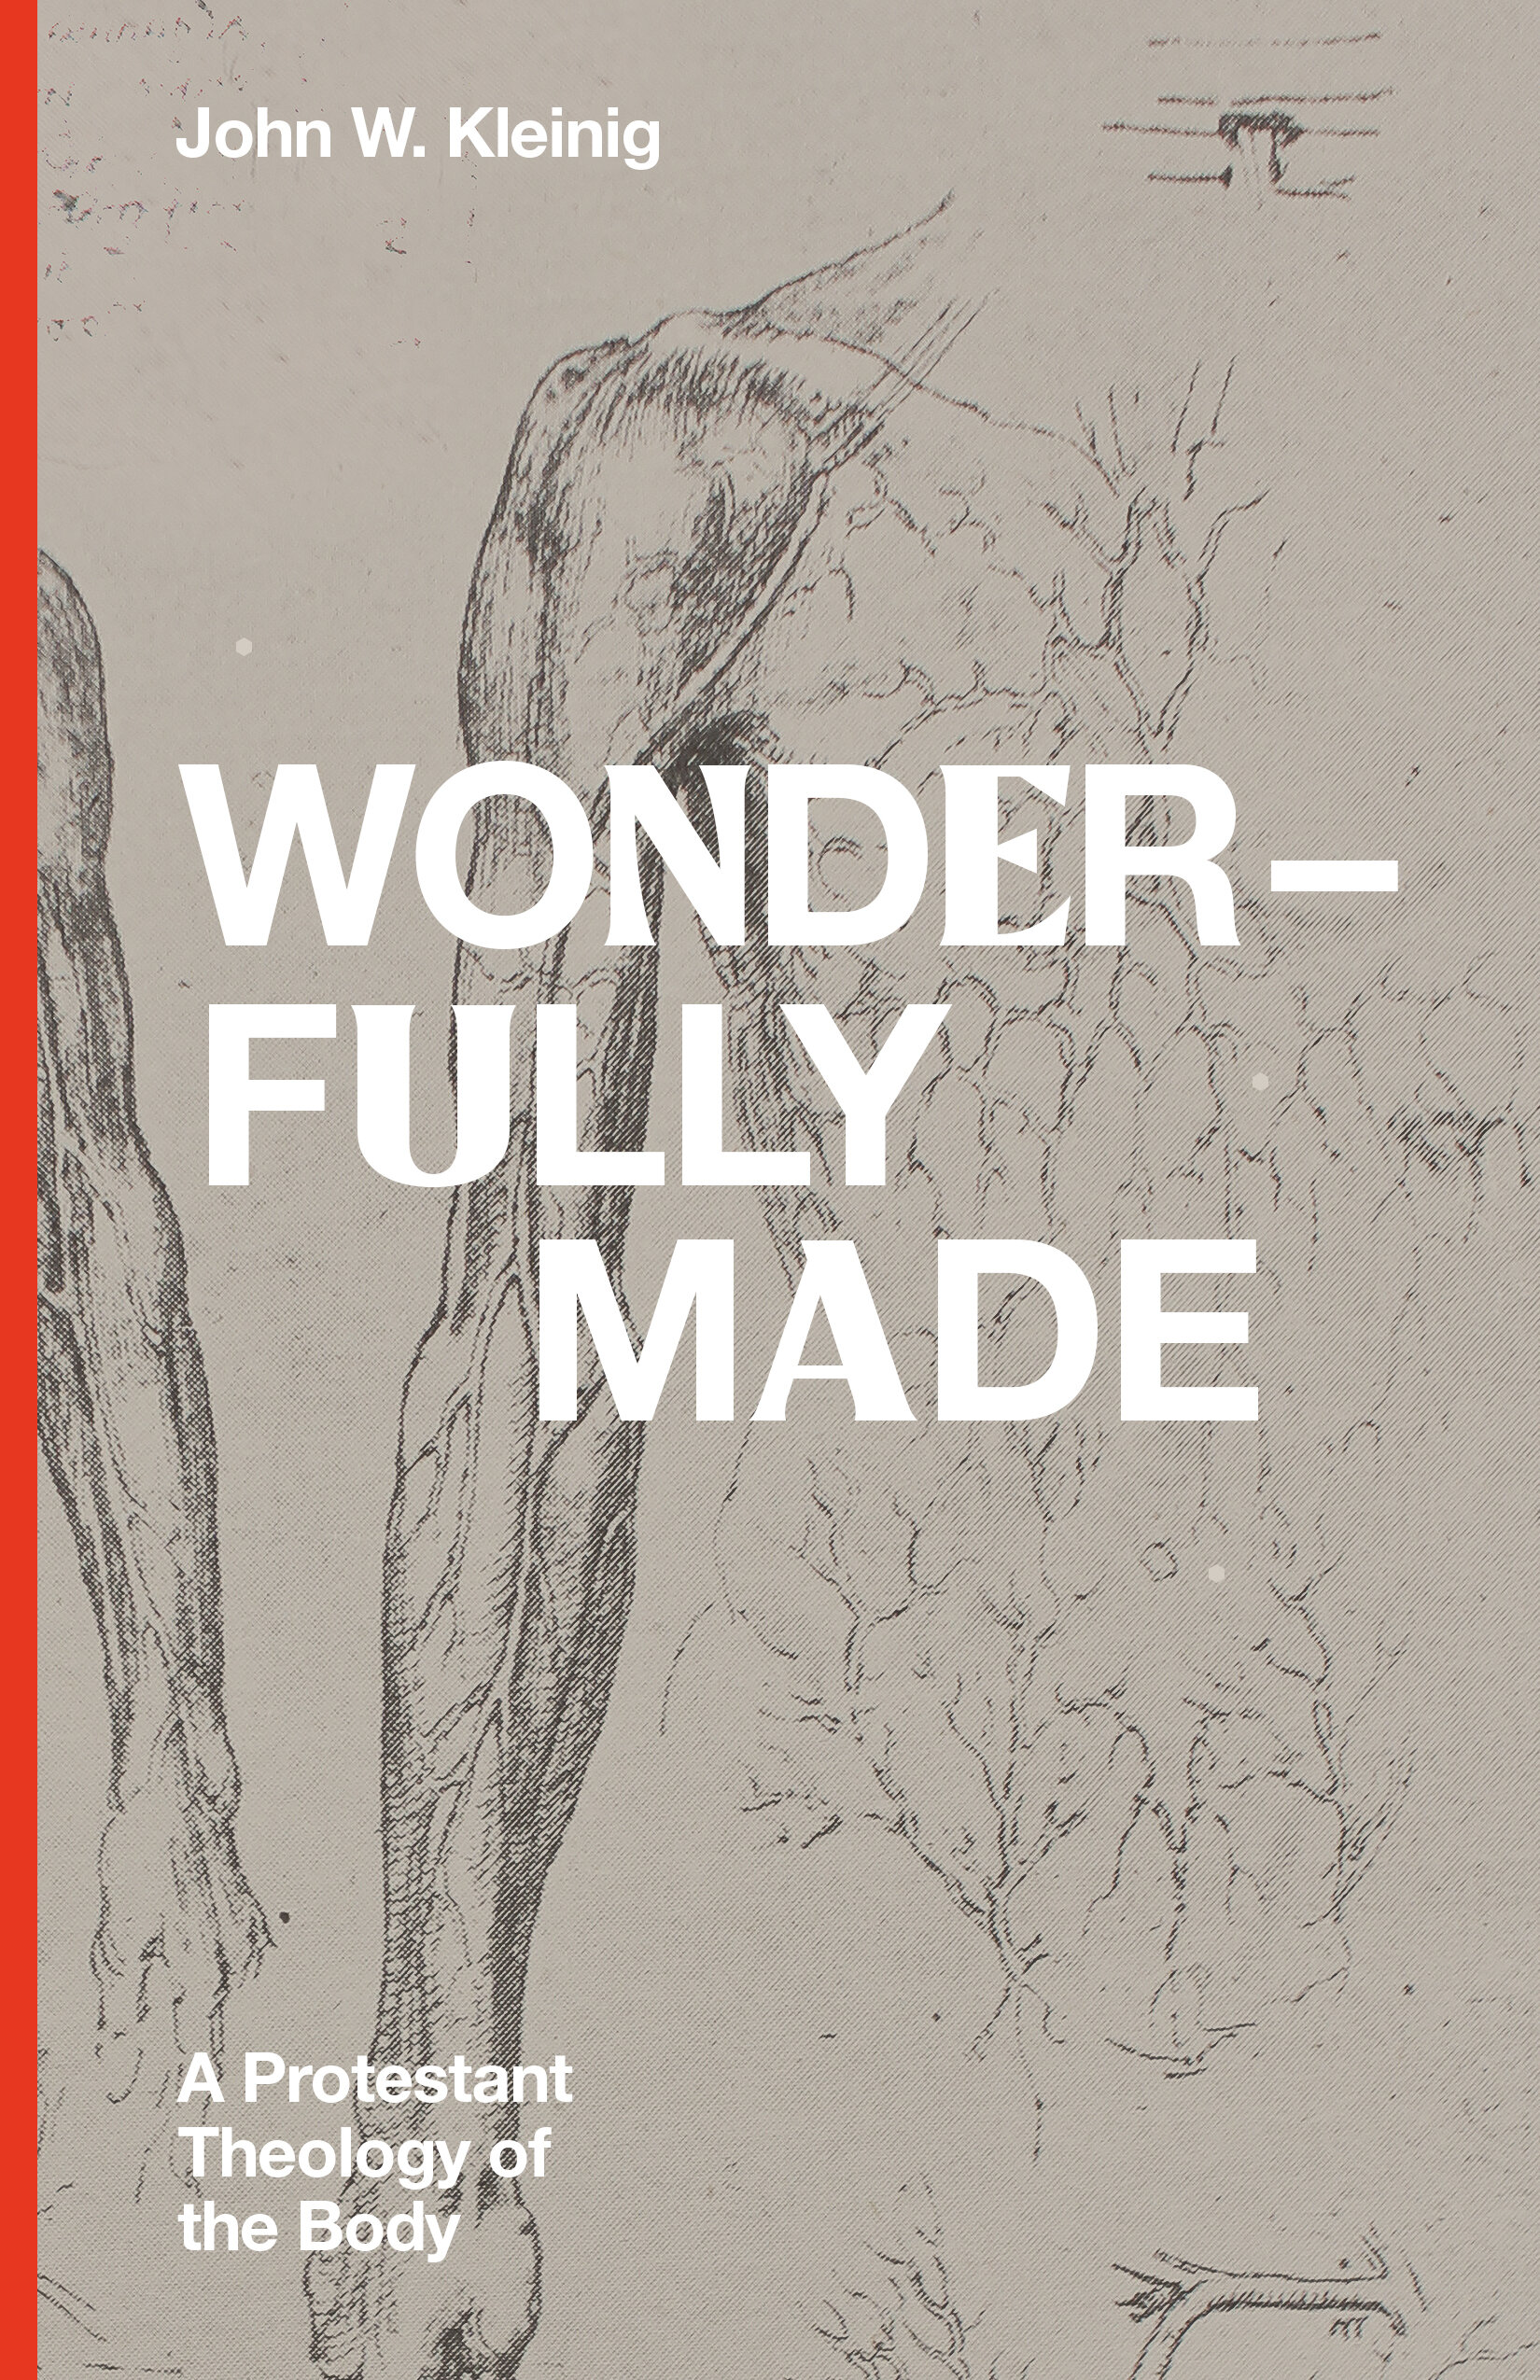 Wonderfully Made: A Protestant Theology of the Body